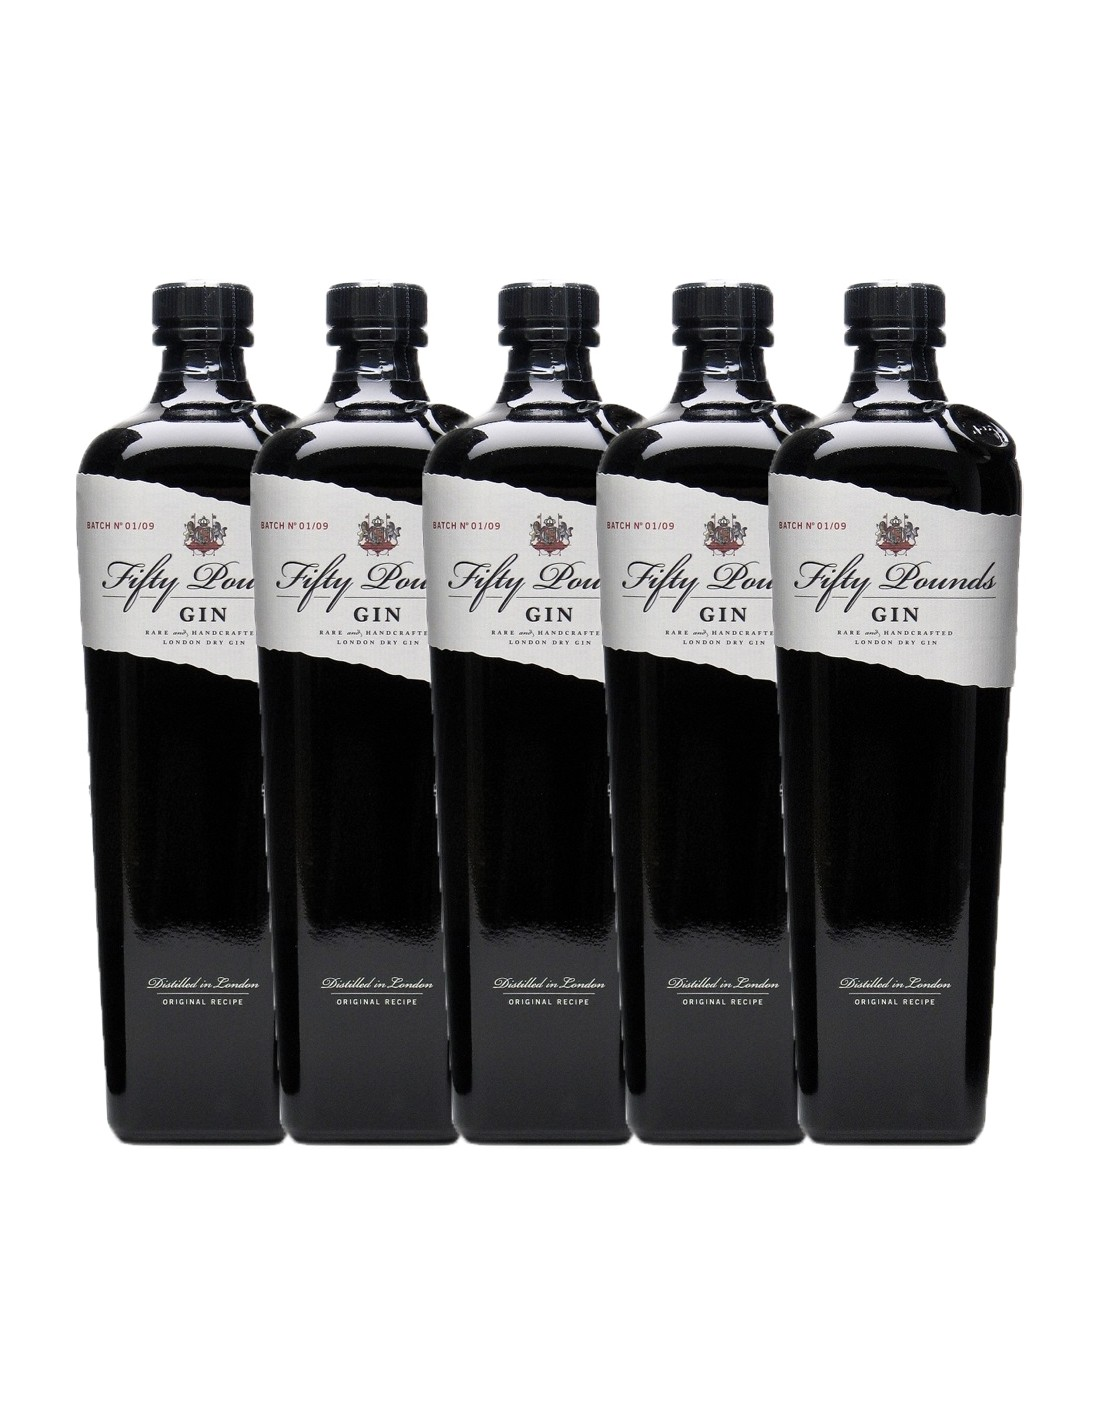 Pachet 5 sticle Gin Fifty Pounds 43.5% alc., 0.7L